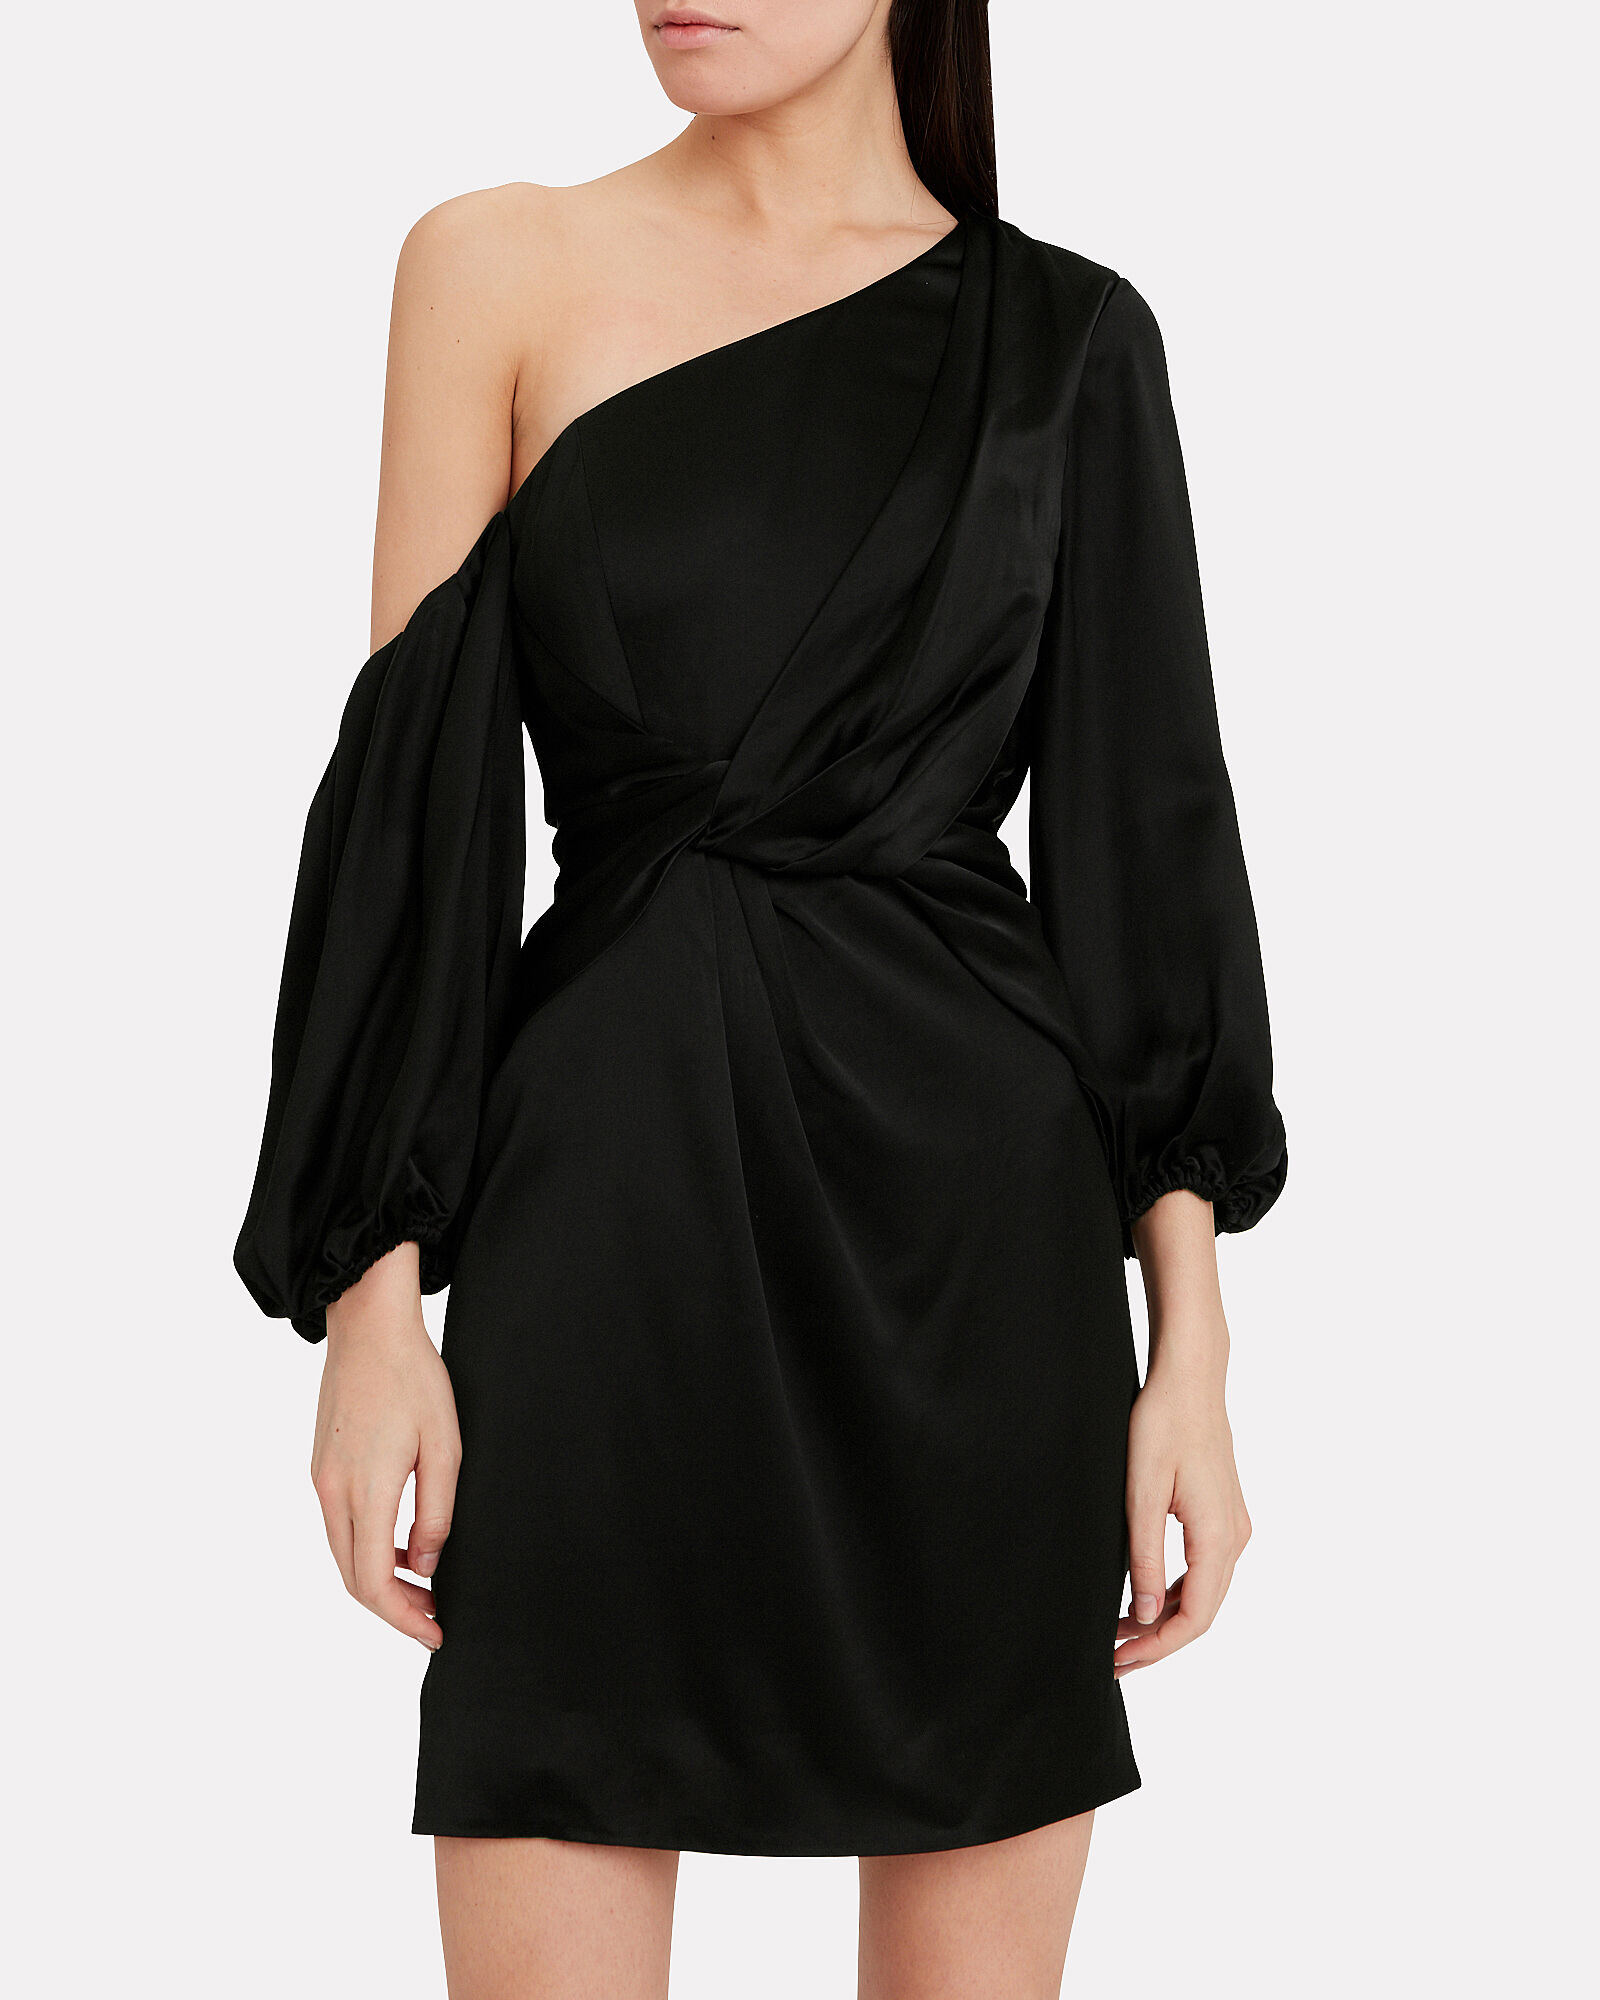 Alessandra Satin Mini Dress, BLACK, hi-res